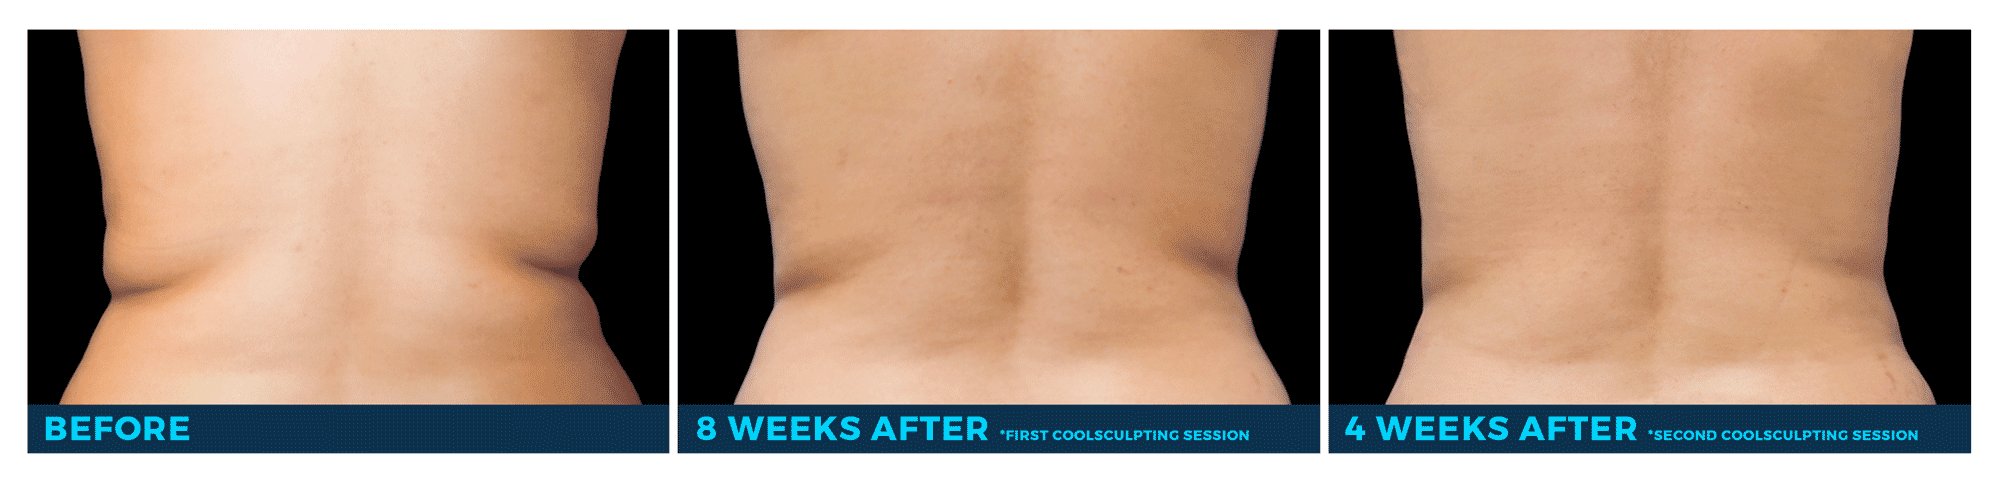 Coolsculpting At Home Results Review Home Co